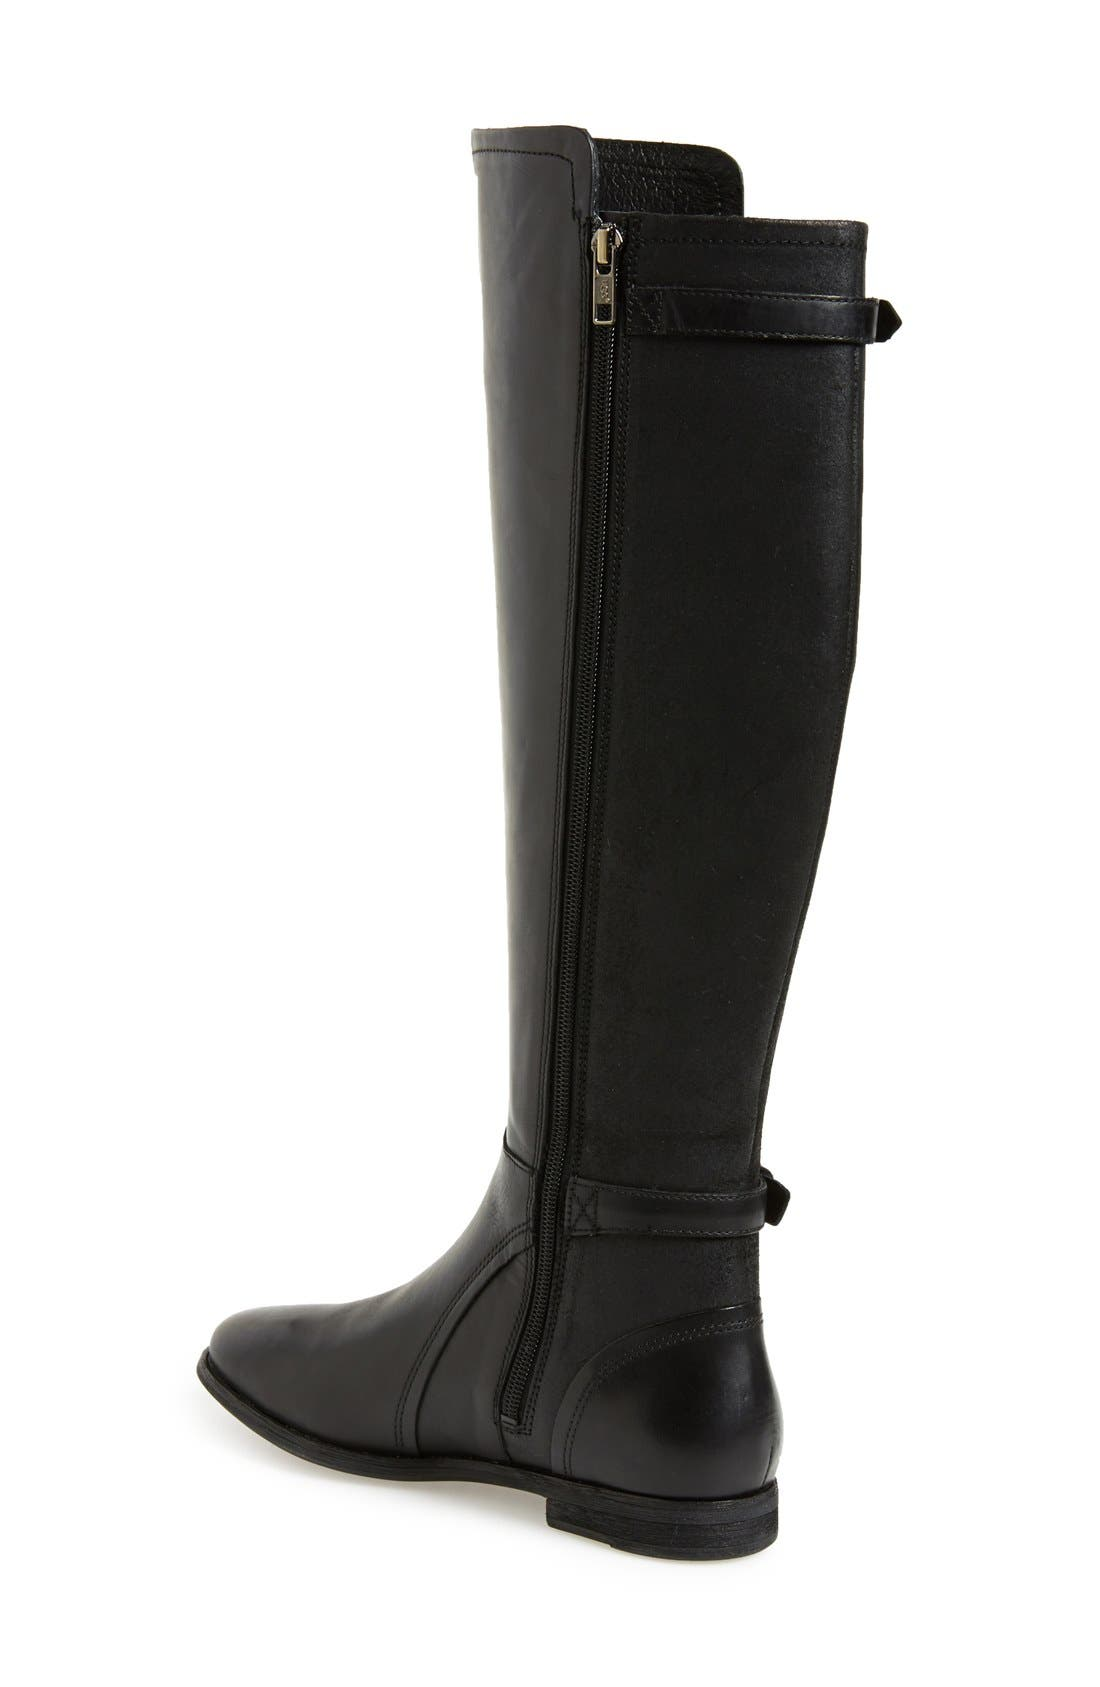 UGG<SUP>®</SUP>, Australia 'Danae' Riding Boot, Alternate thumbnail 4, color, 001